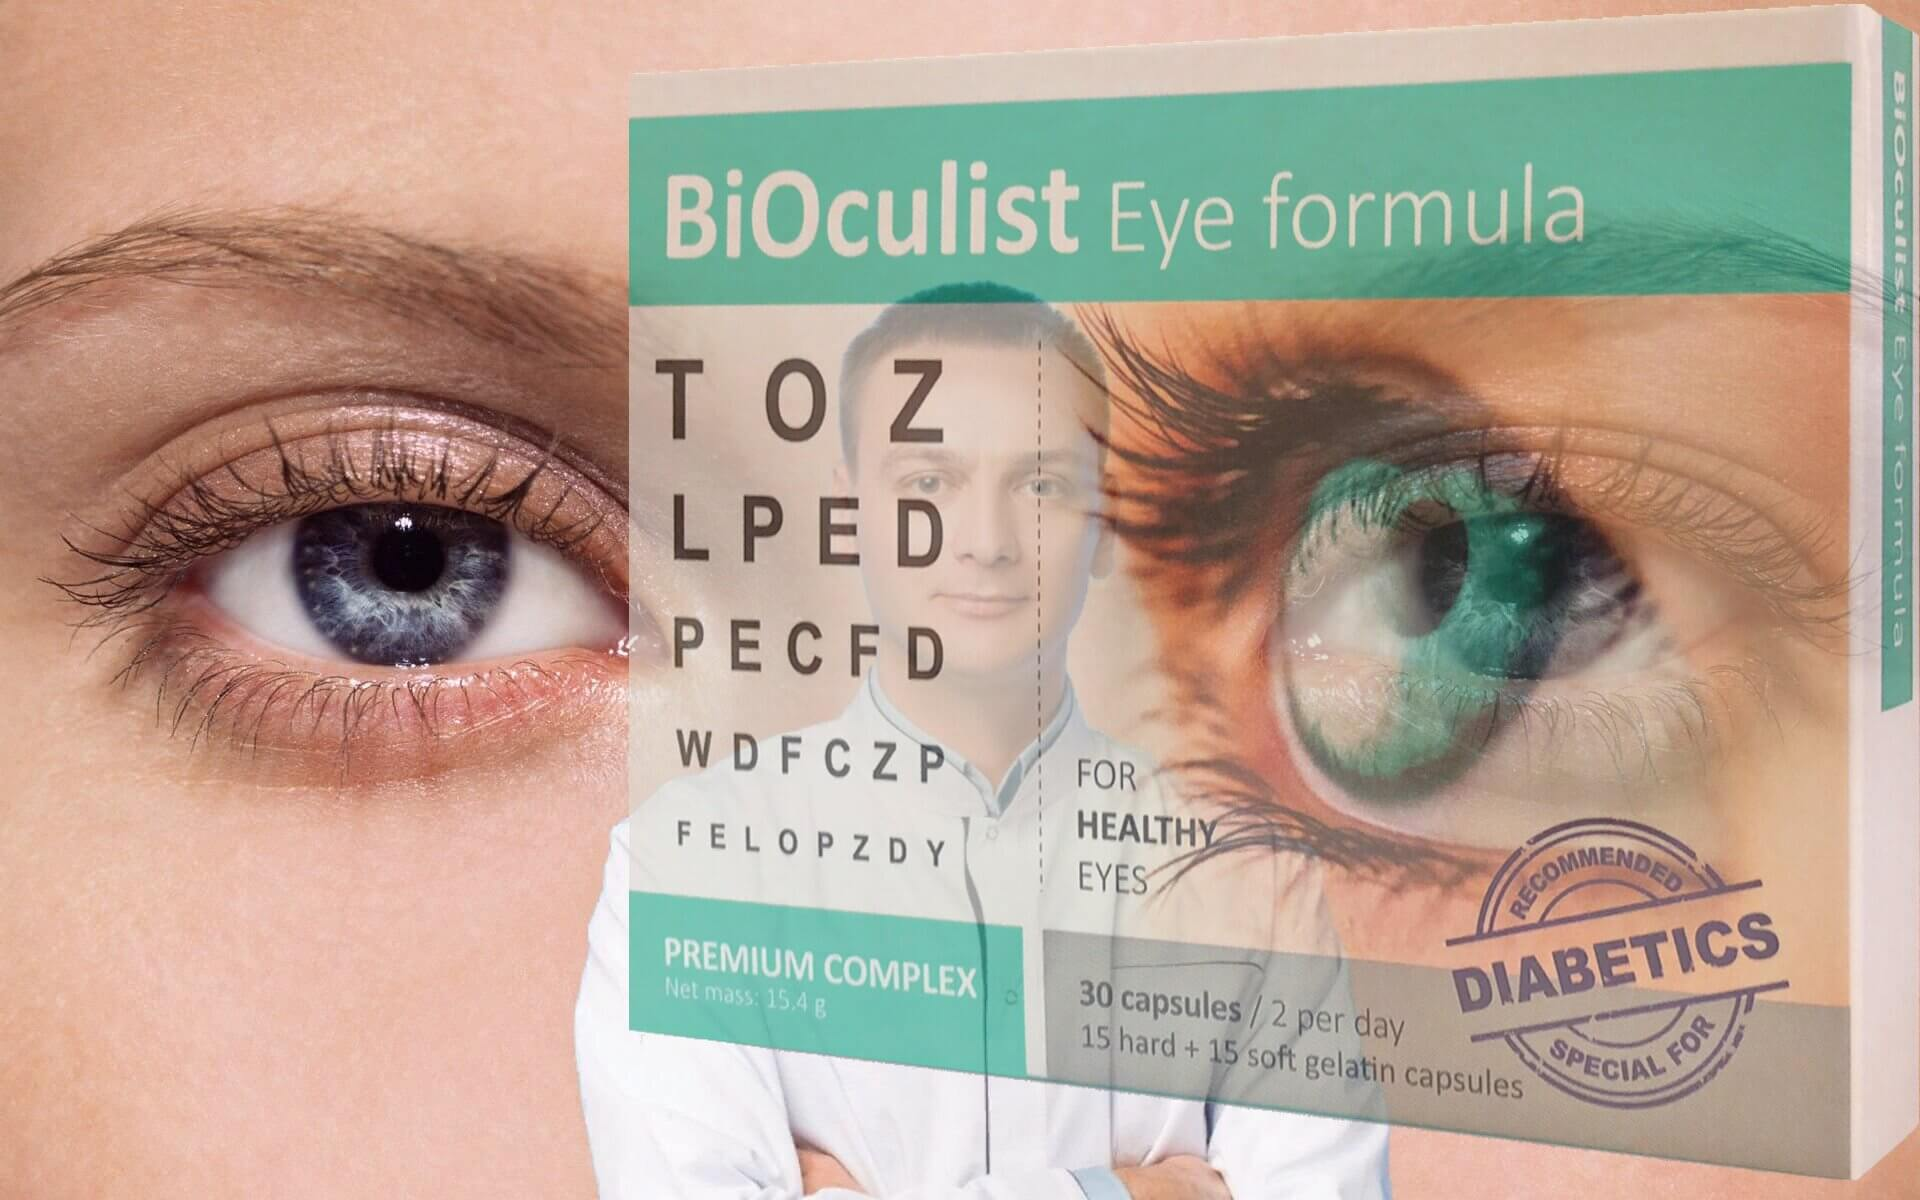 BiOculist to improve vision